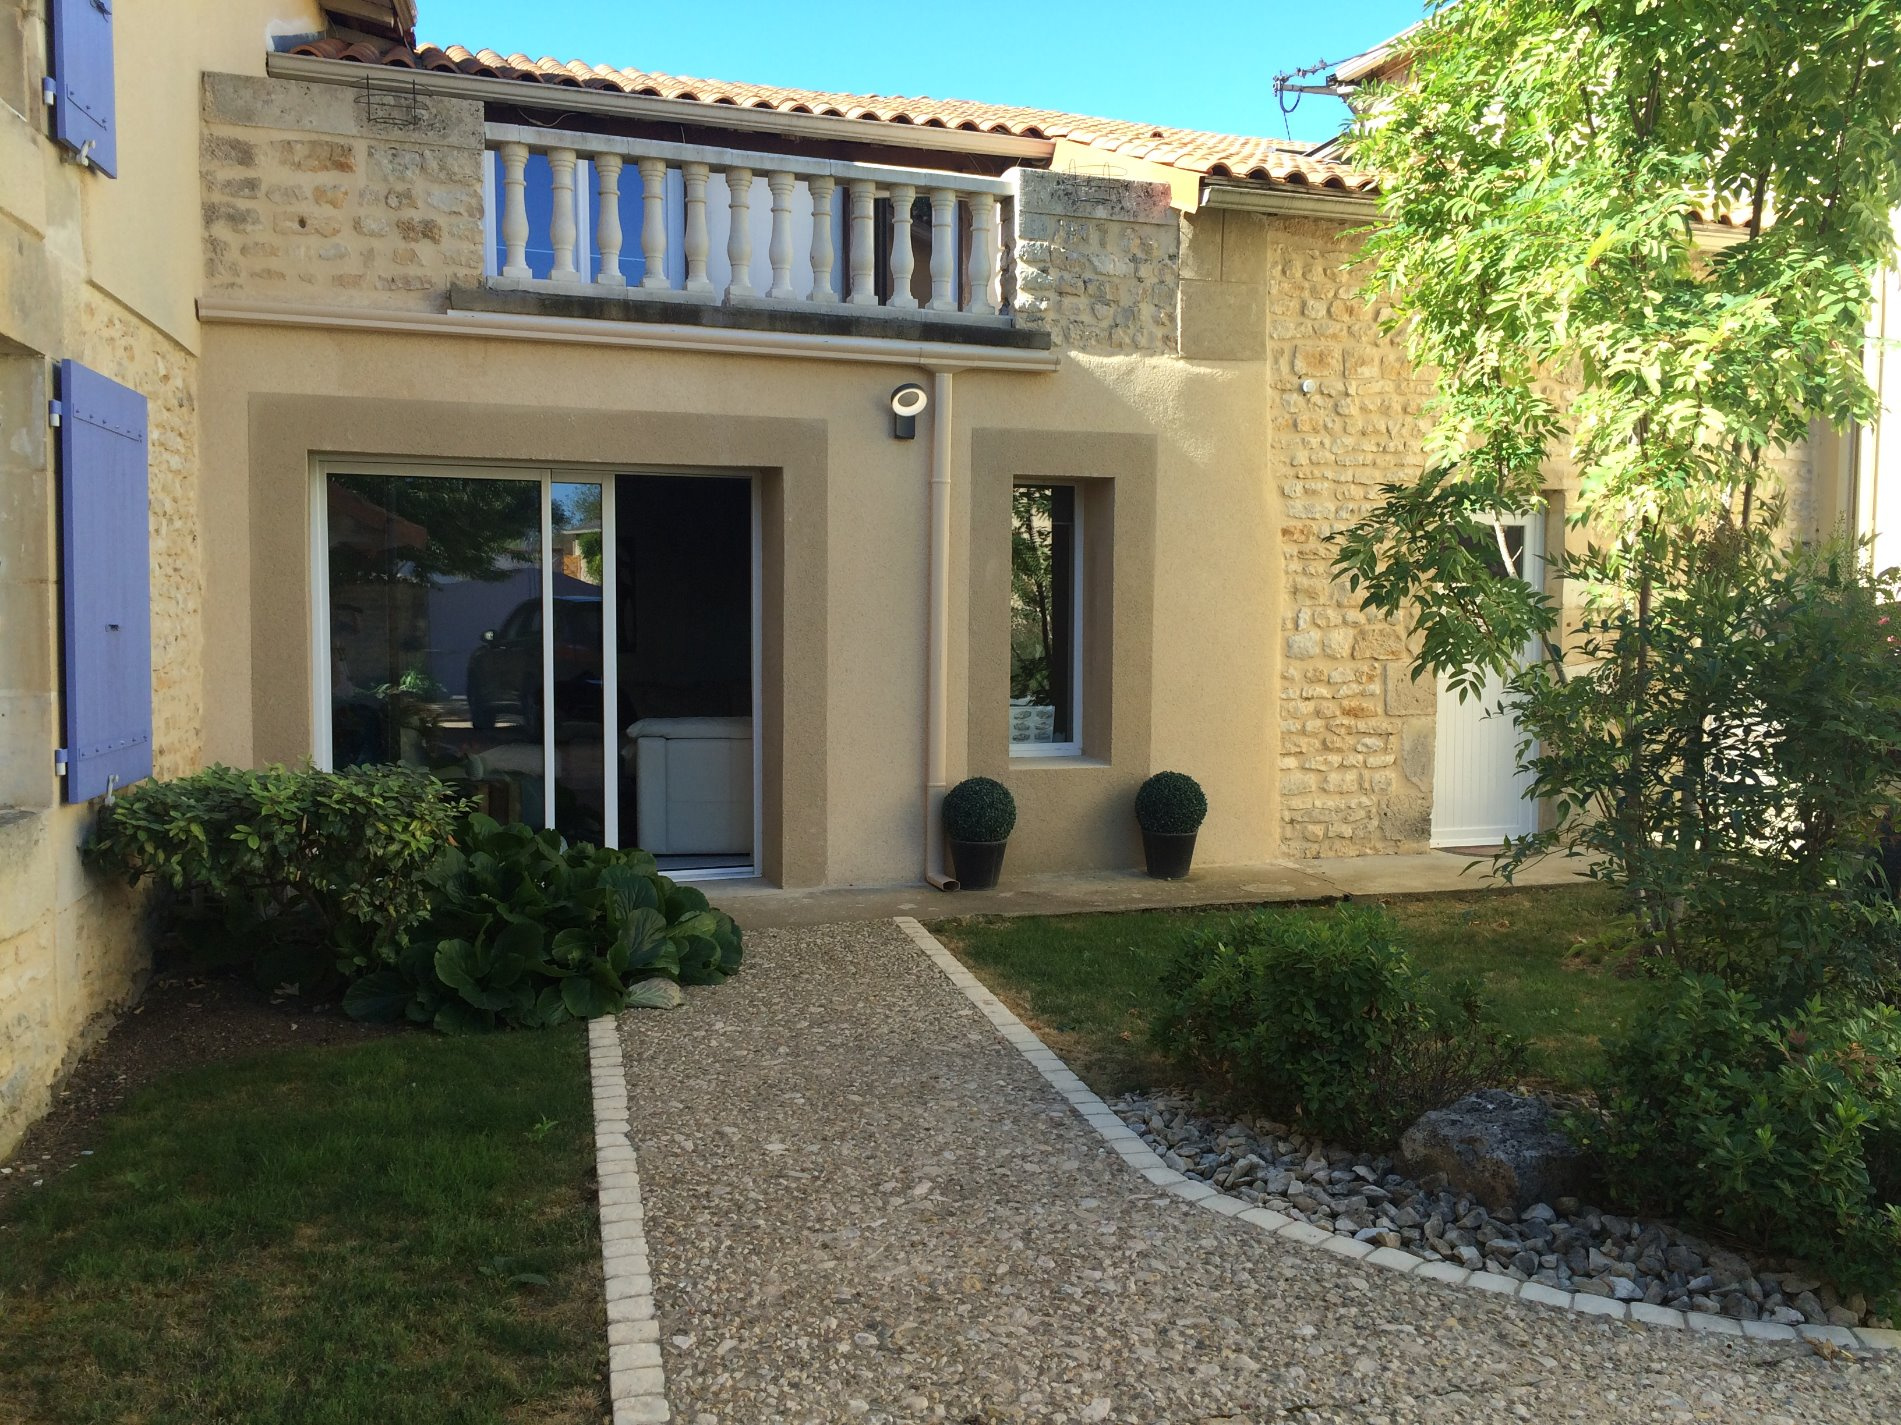 Vente maisons et villas gloeser immobilier for Maison contemporaine poitiers